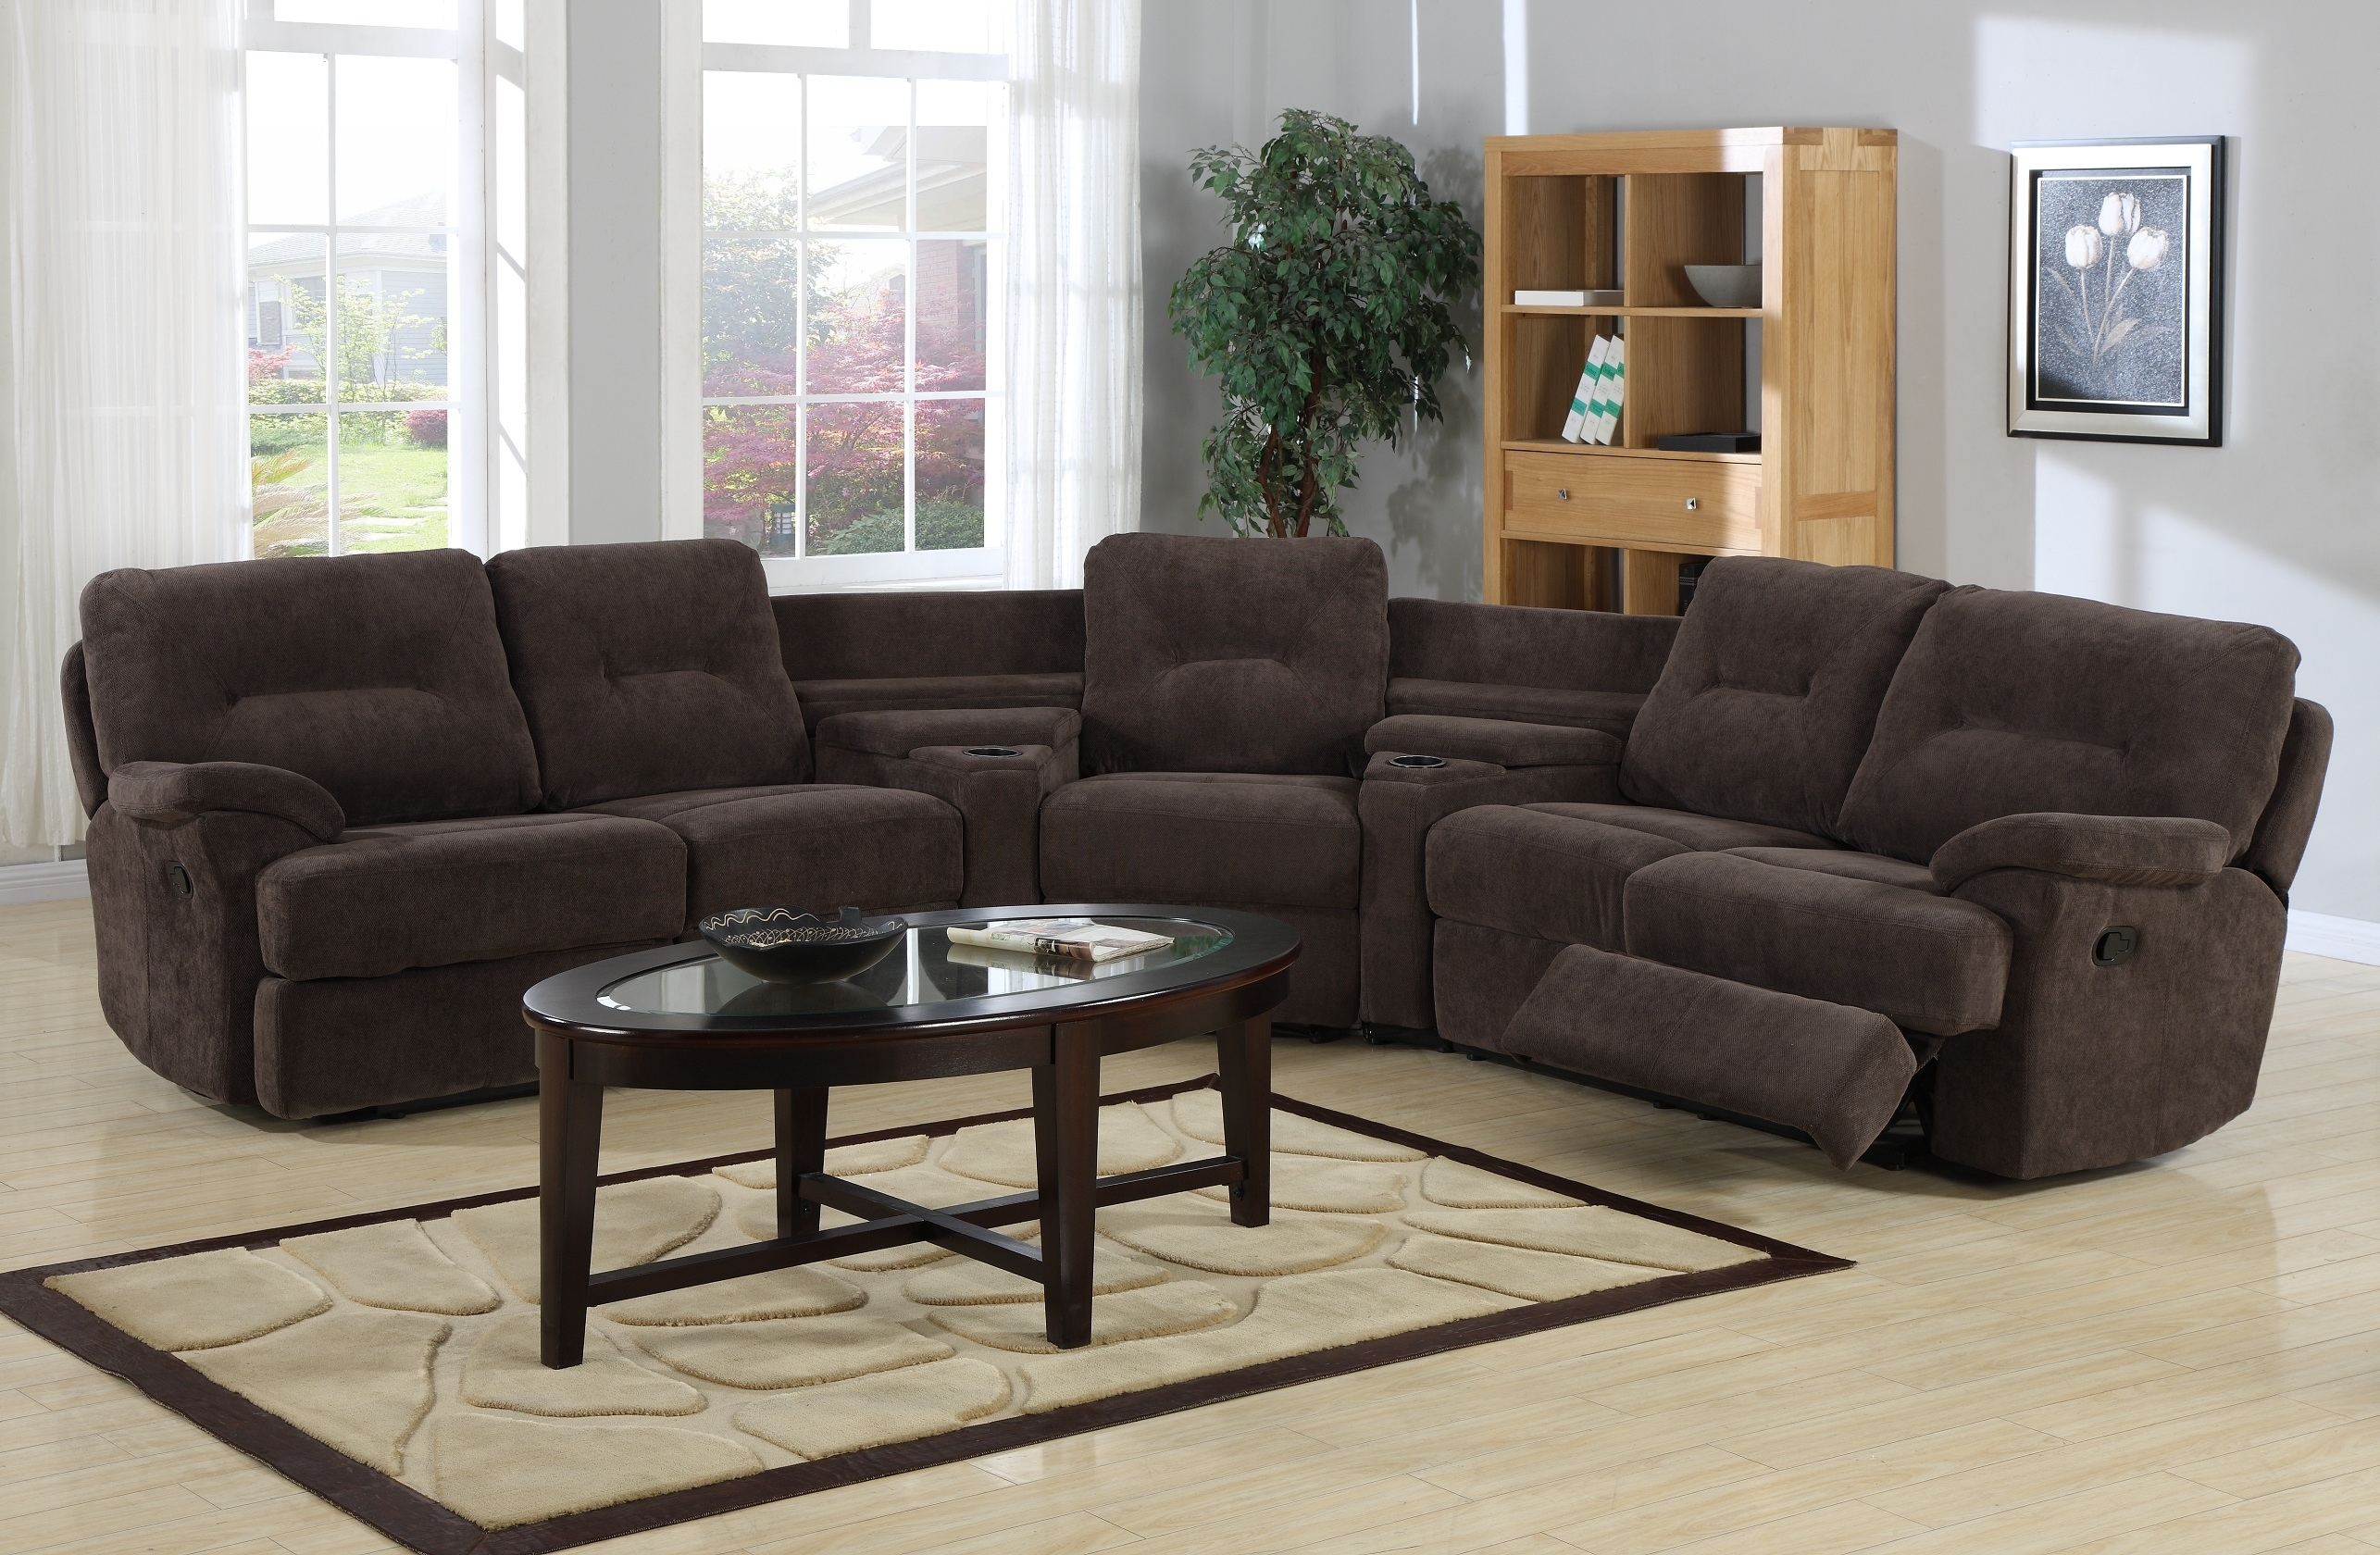 Curved Sectional Sofa With Recliner – Hotelsbacau For Curved Recliner Sofas (Image 3 of 10)